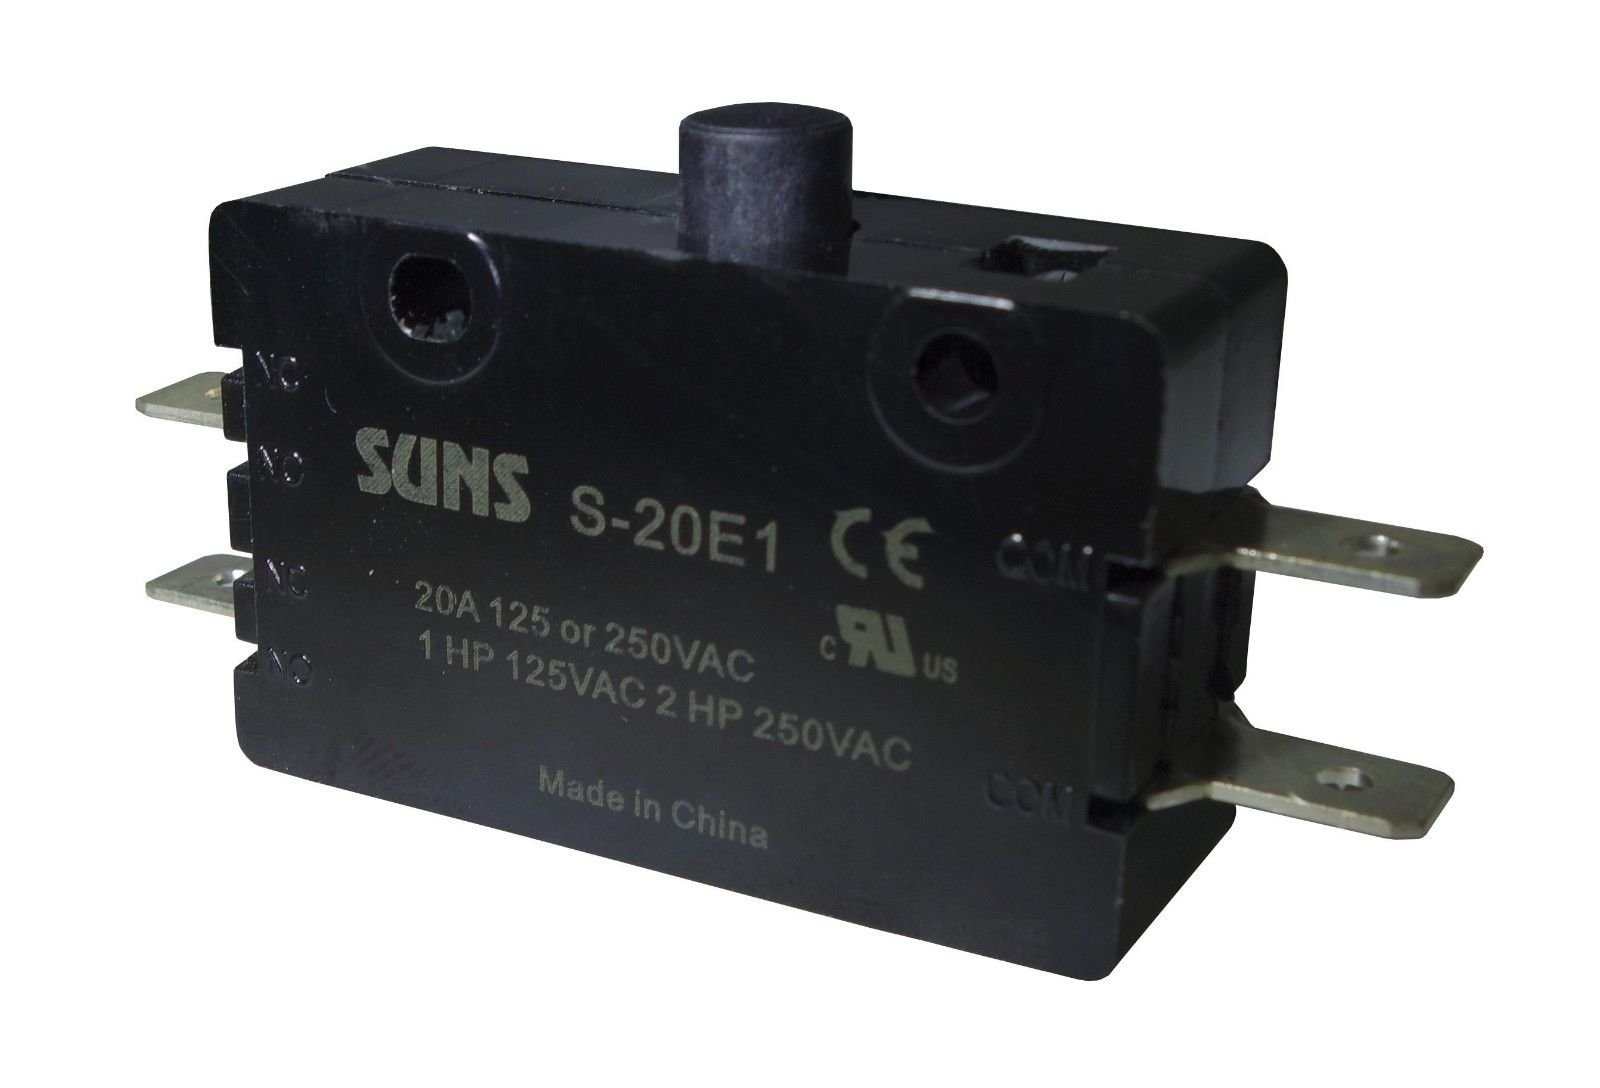 Suns International S-20E1 S-20 Series DPDT (2NO) 20 A Plunger General Purpose Micro Switch - 1 Item(s)